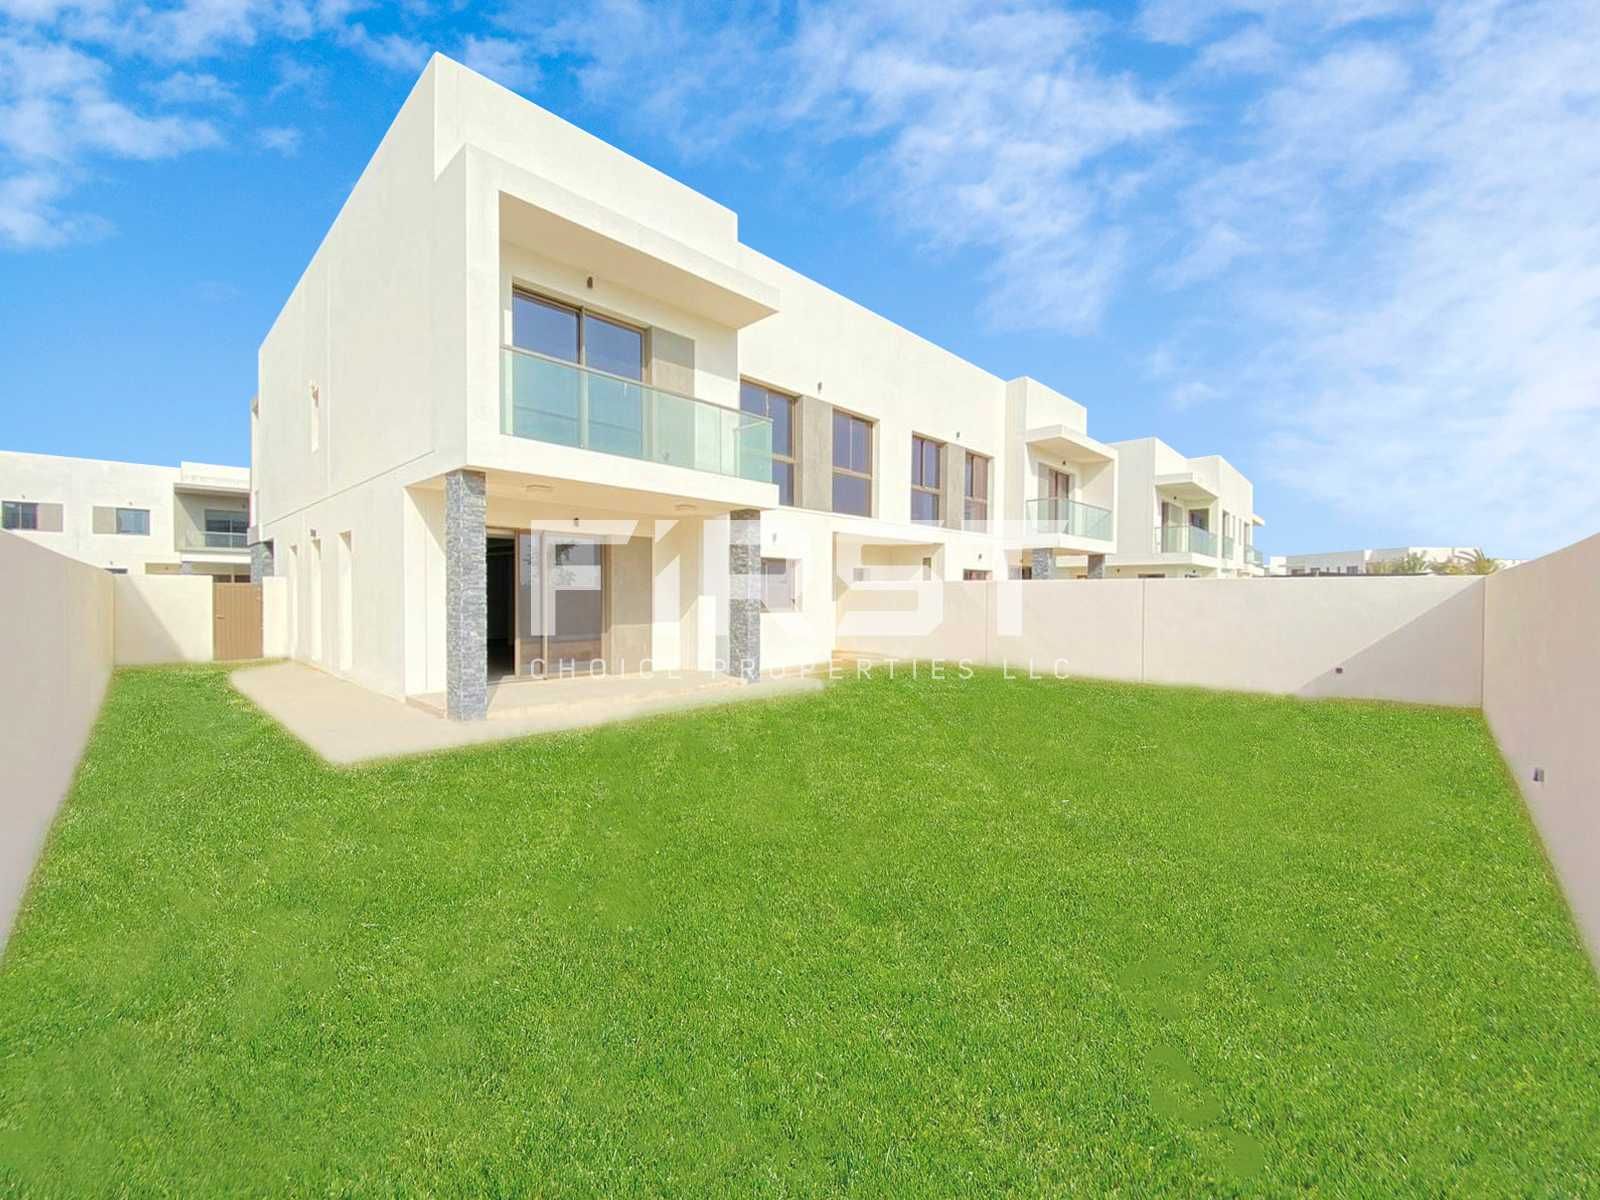 External Photo of 4 Bedroom Duplex Type 4Y in Yas Acres Yas Island AUH UAE (3).jpg